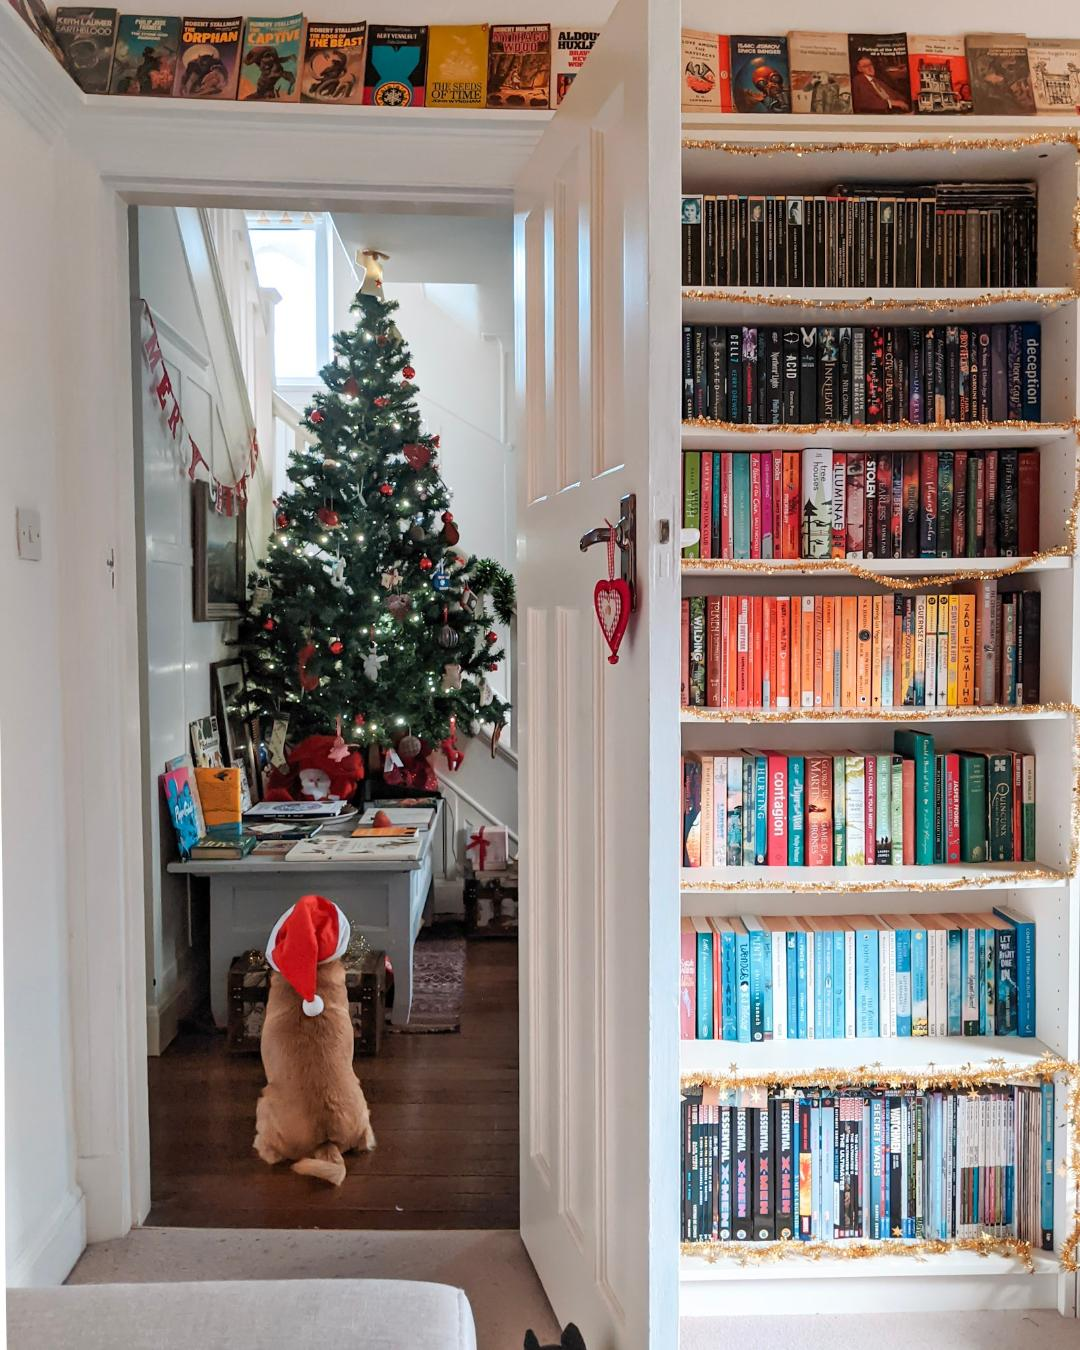 A dog in a Santa hat sitting in an open doorway next to a rainbow bookshelf and looking at a Christmas tree to represent a post listing our 2020 top 15 books.